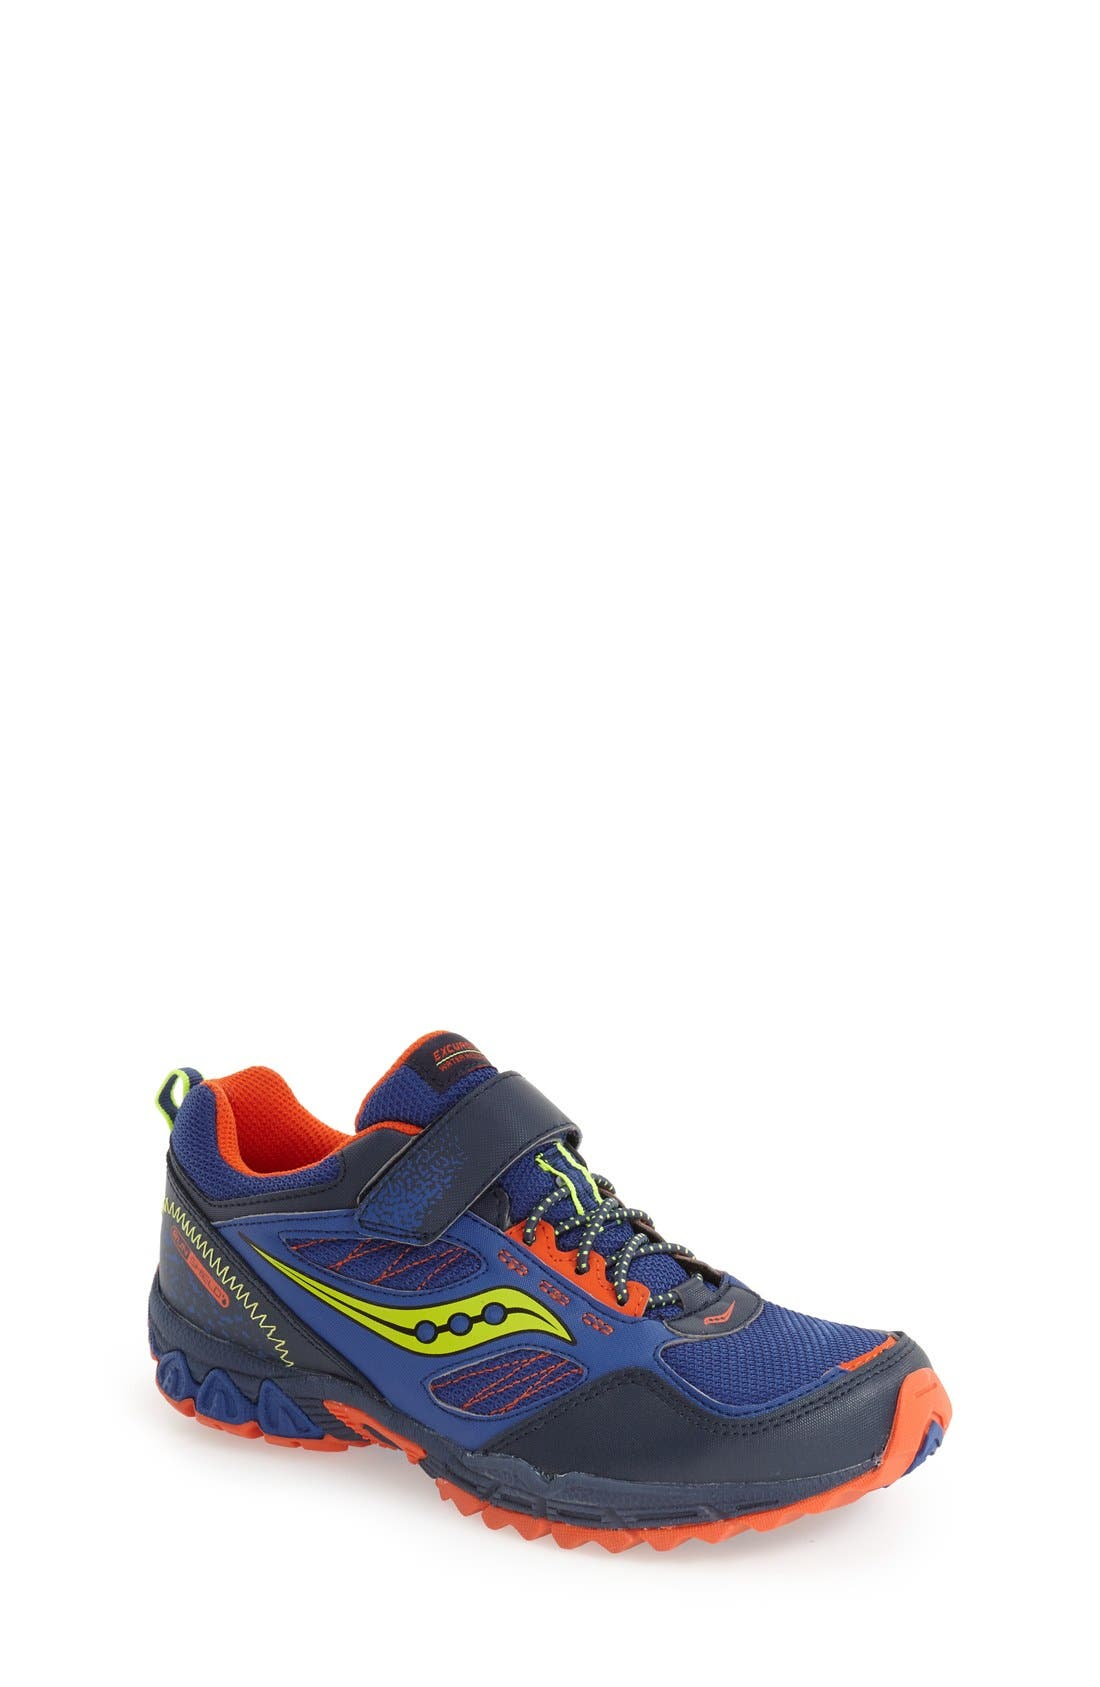 Alternate Image 1 Selected - Saucony 'Excursion Shield' Water Resistant Trail Shoe (Toddler, Little Kid & Big Kid)